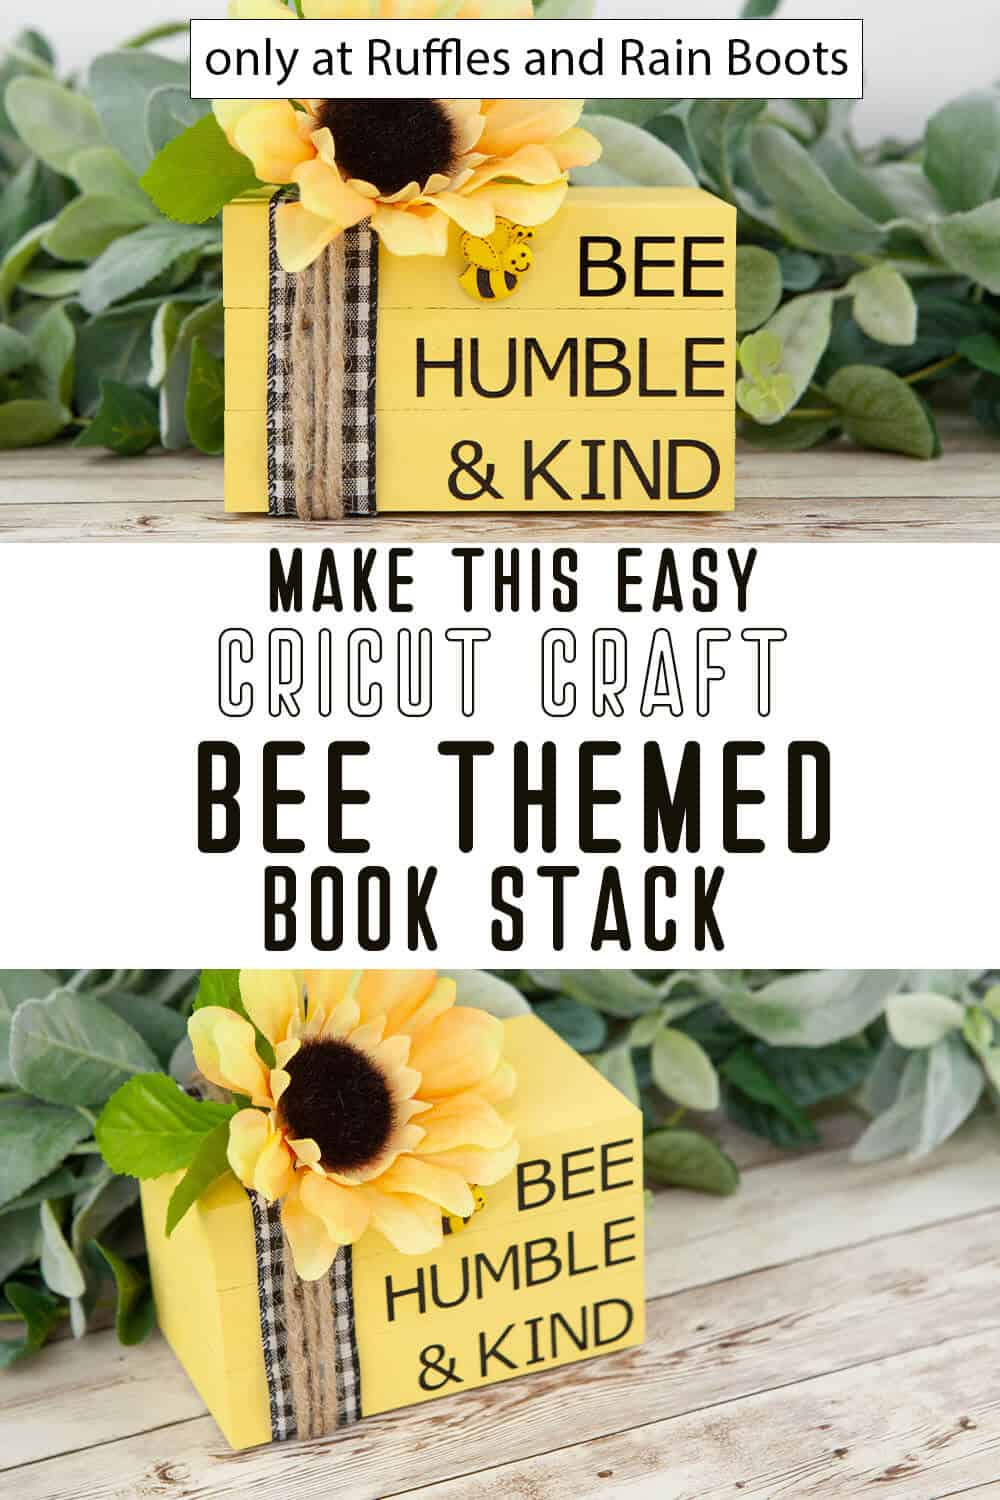 photo collage of easy cricut craft bee themed book stack with text which reads make this easy cricut craft bee themed book stack